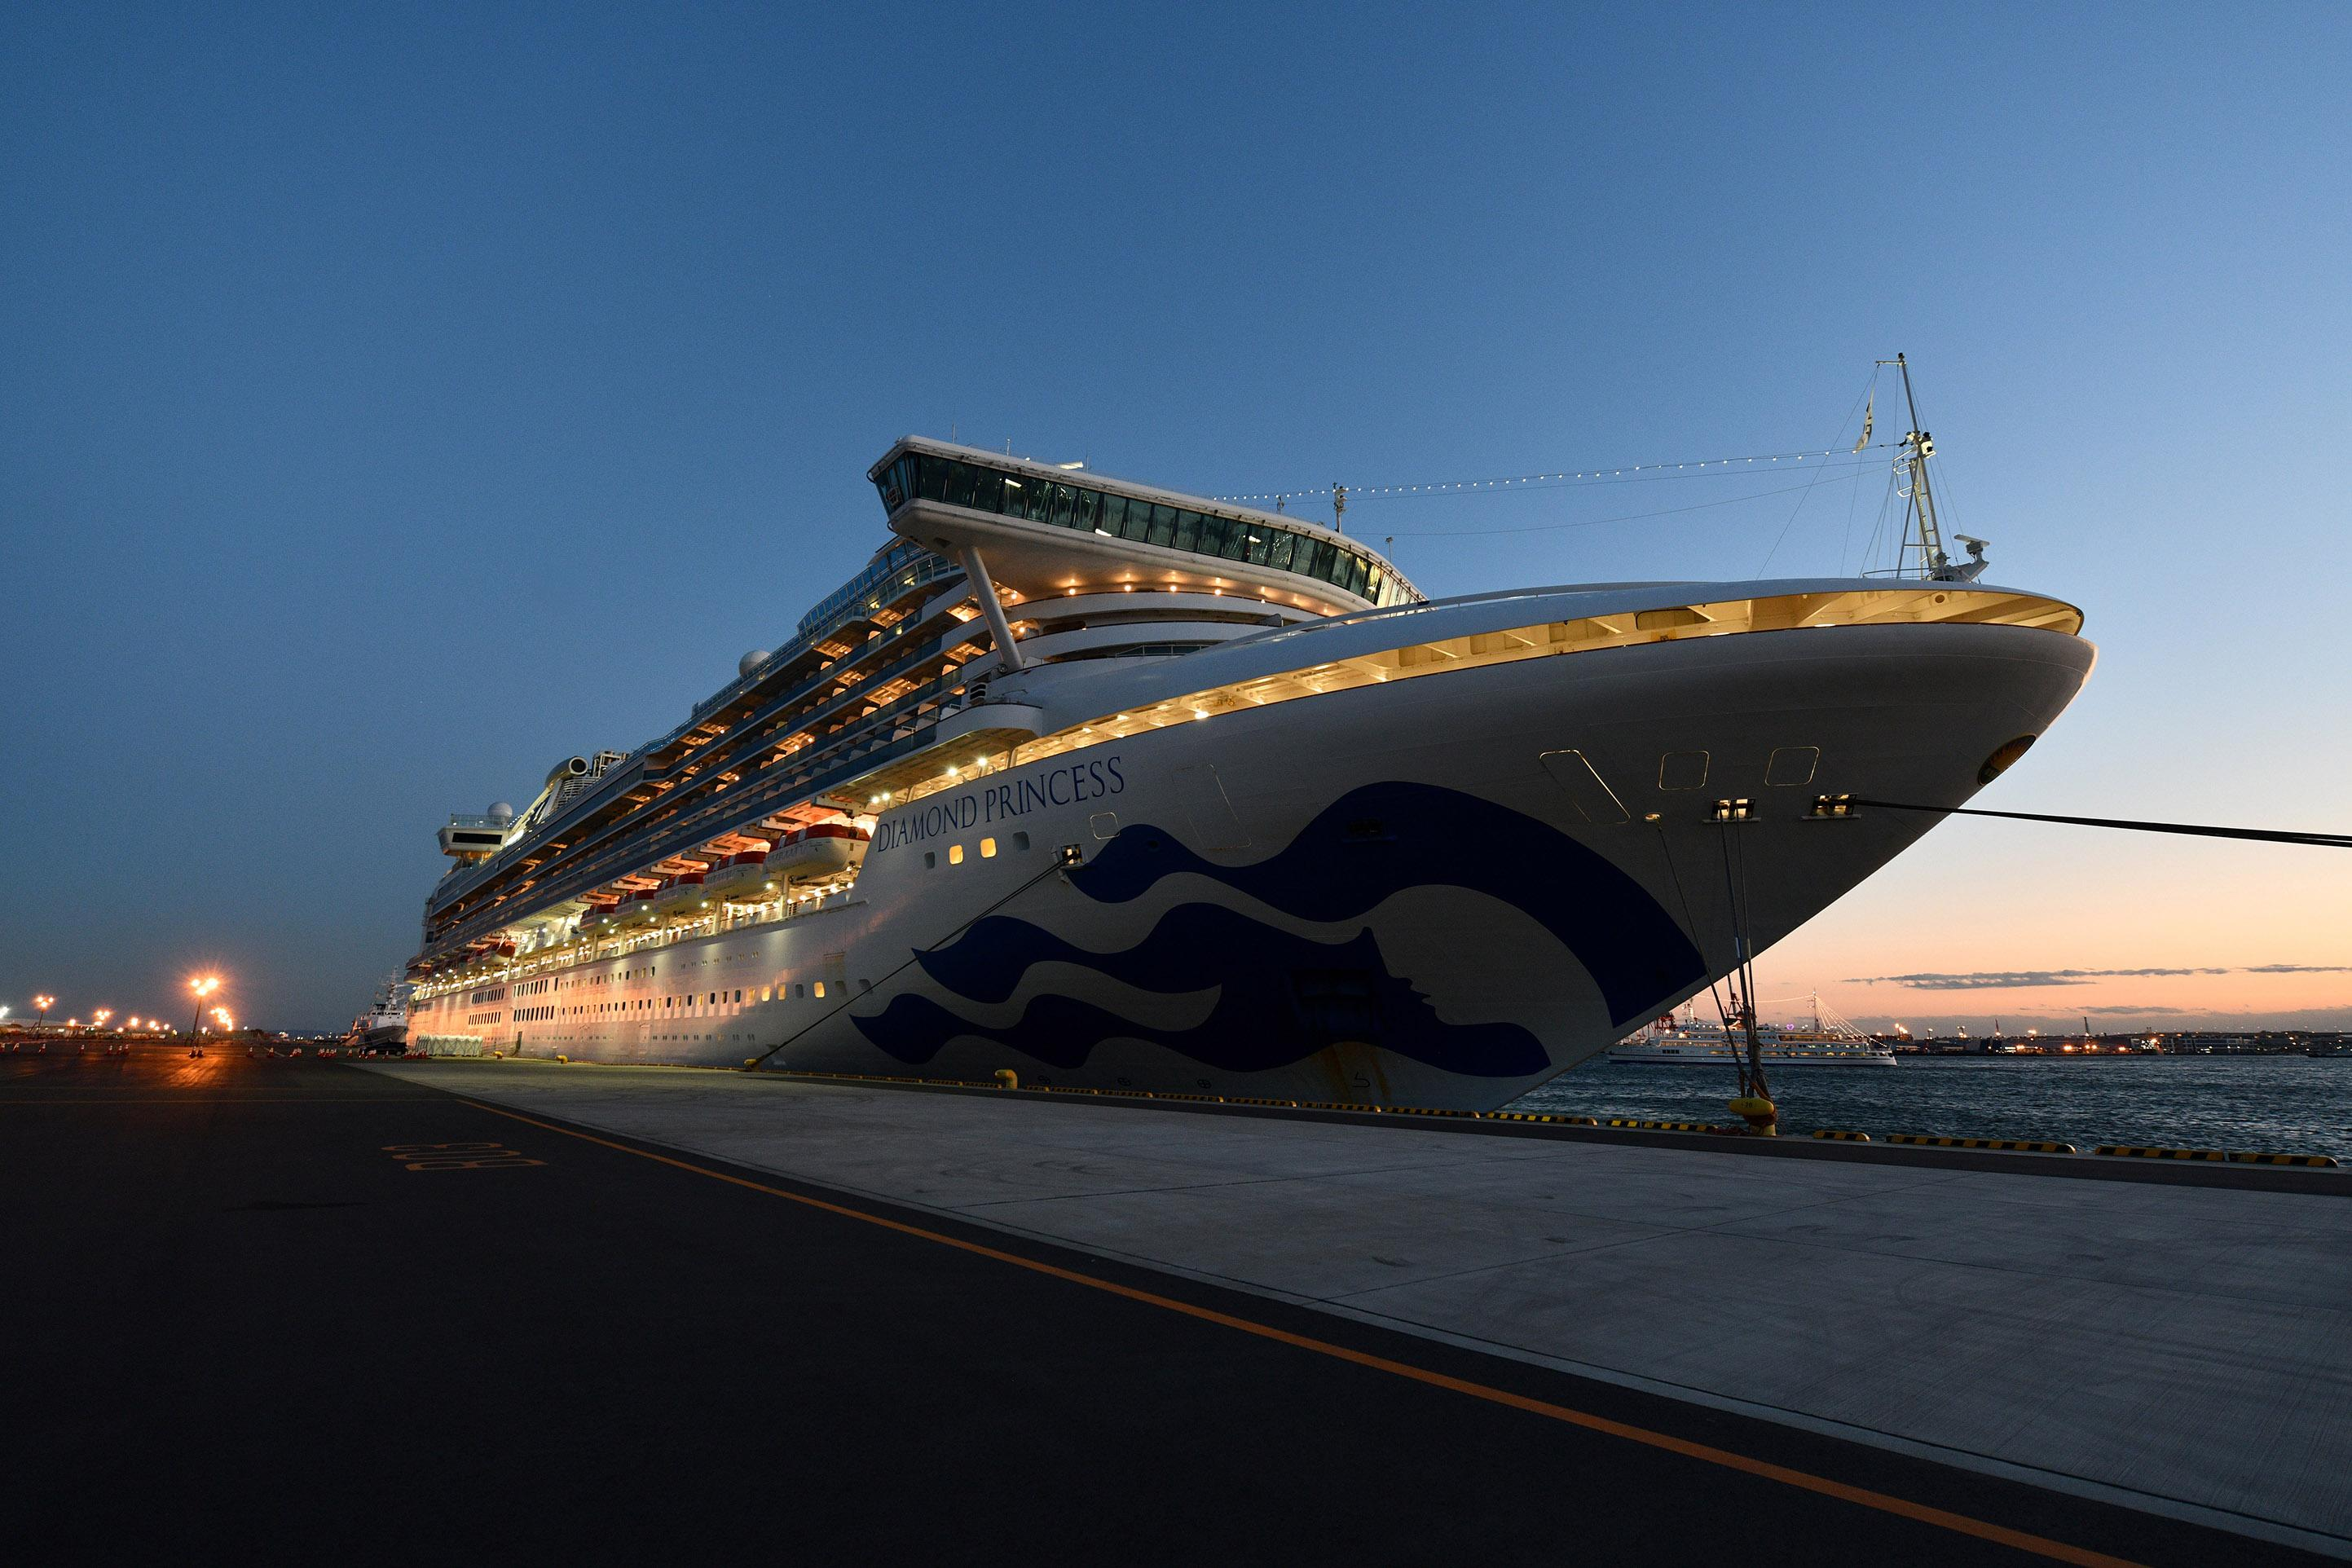 Recent travellers to China won't be allowed to board most cruise ships""